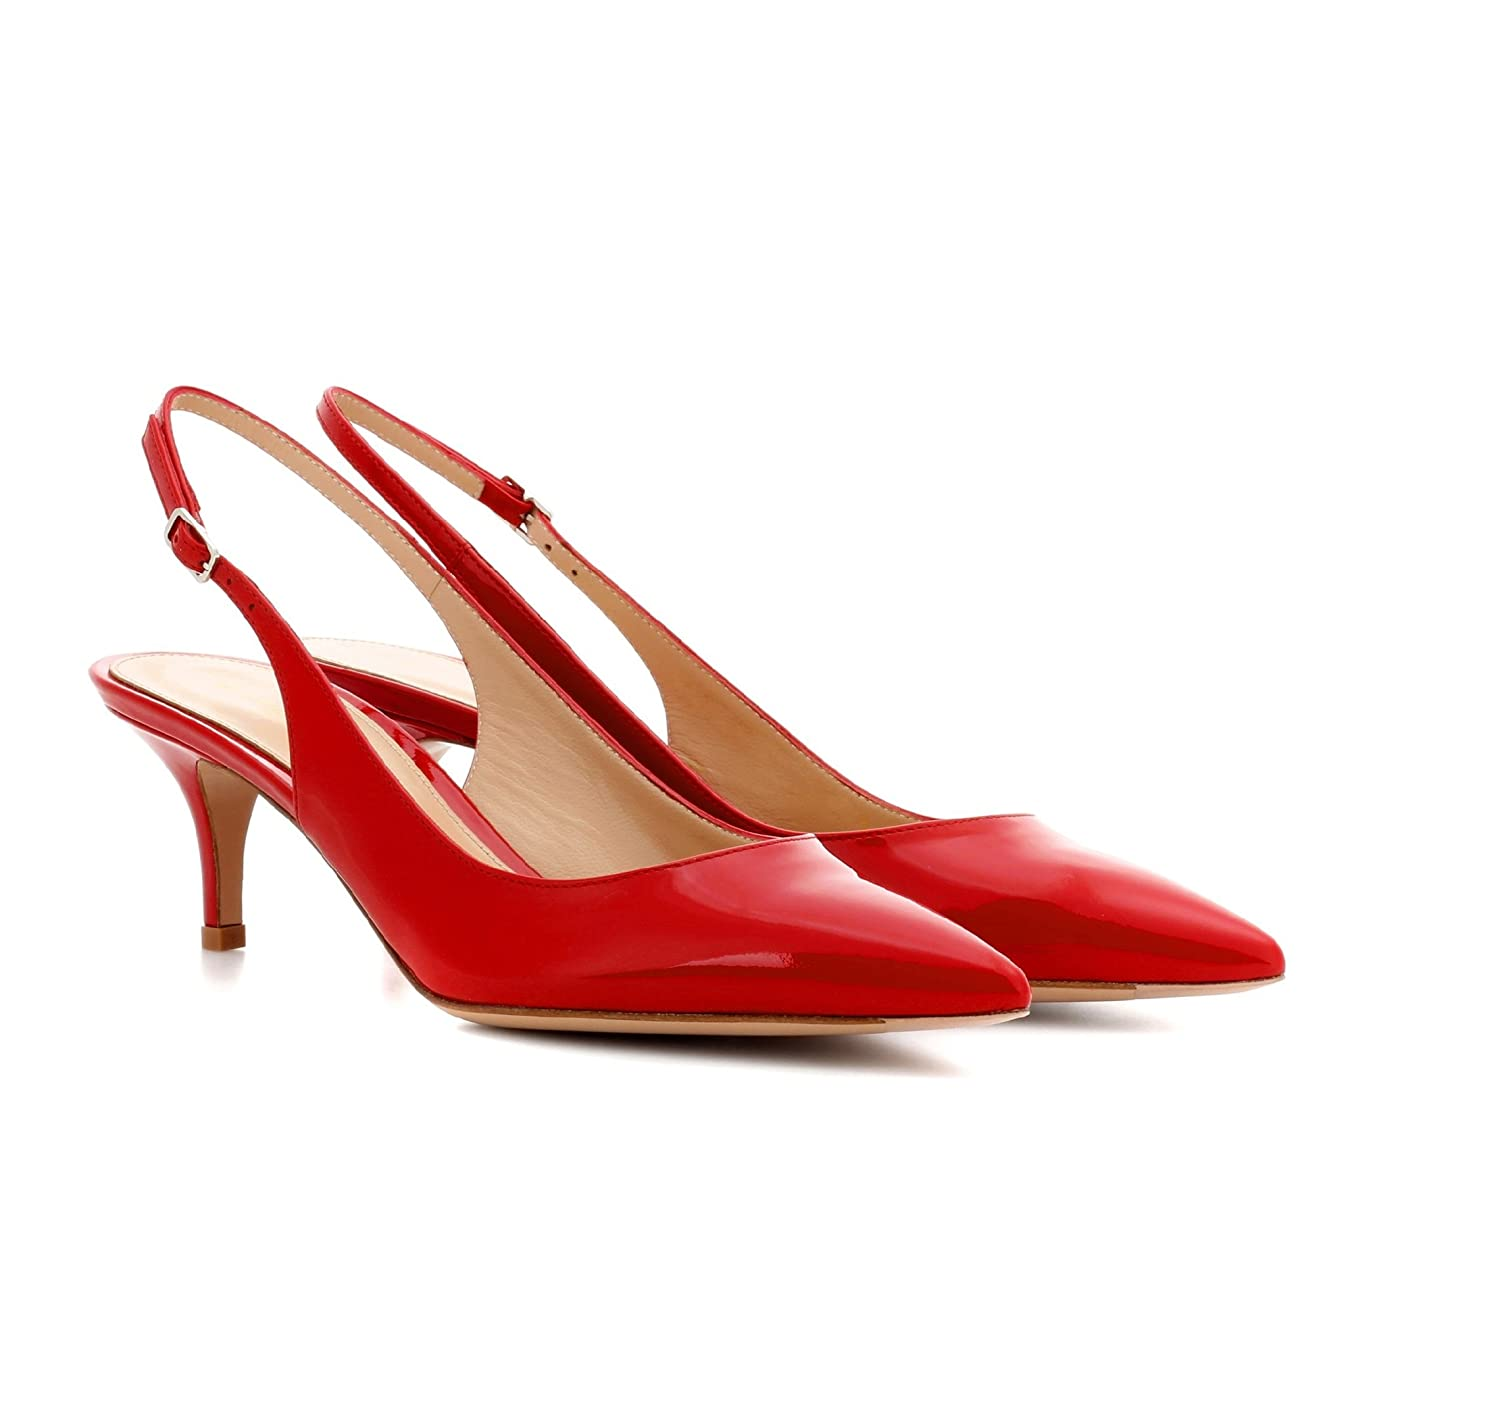 Sammitop Women's Pointed Toe Slingback Shoes Kitten Heel Pumps Comfortable Dress Shoes B077SC72YY 11.5 B(M) US|Red